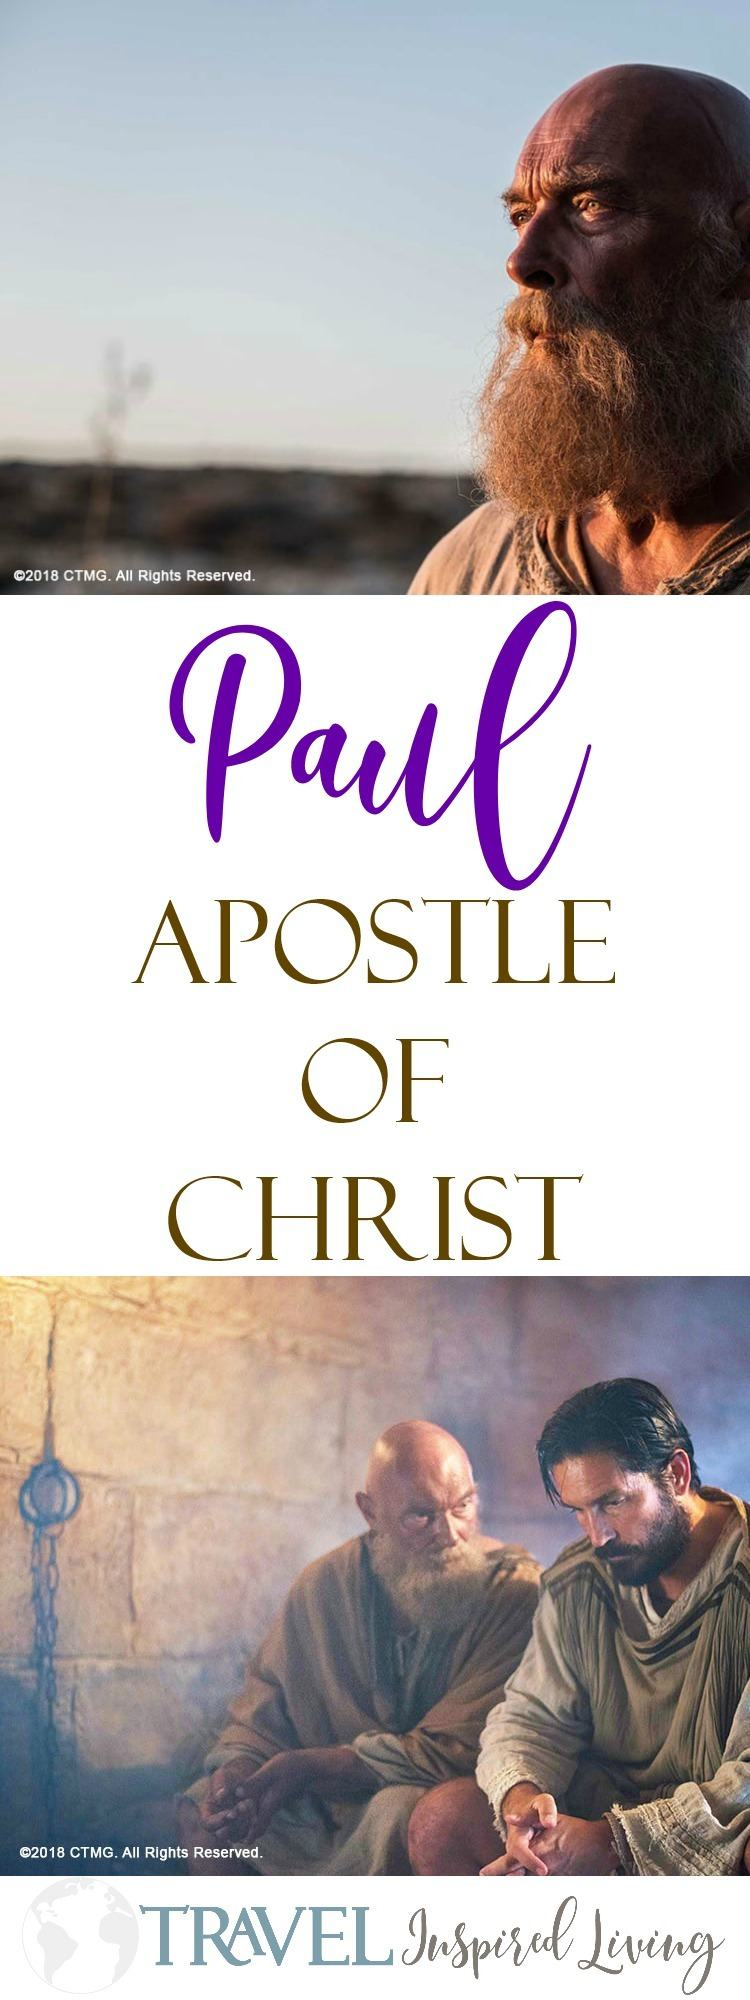 Paul, Apostle of Christ opens in theaters on March 23rd, 2018. (ad) #PaulMovie #FlyBy